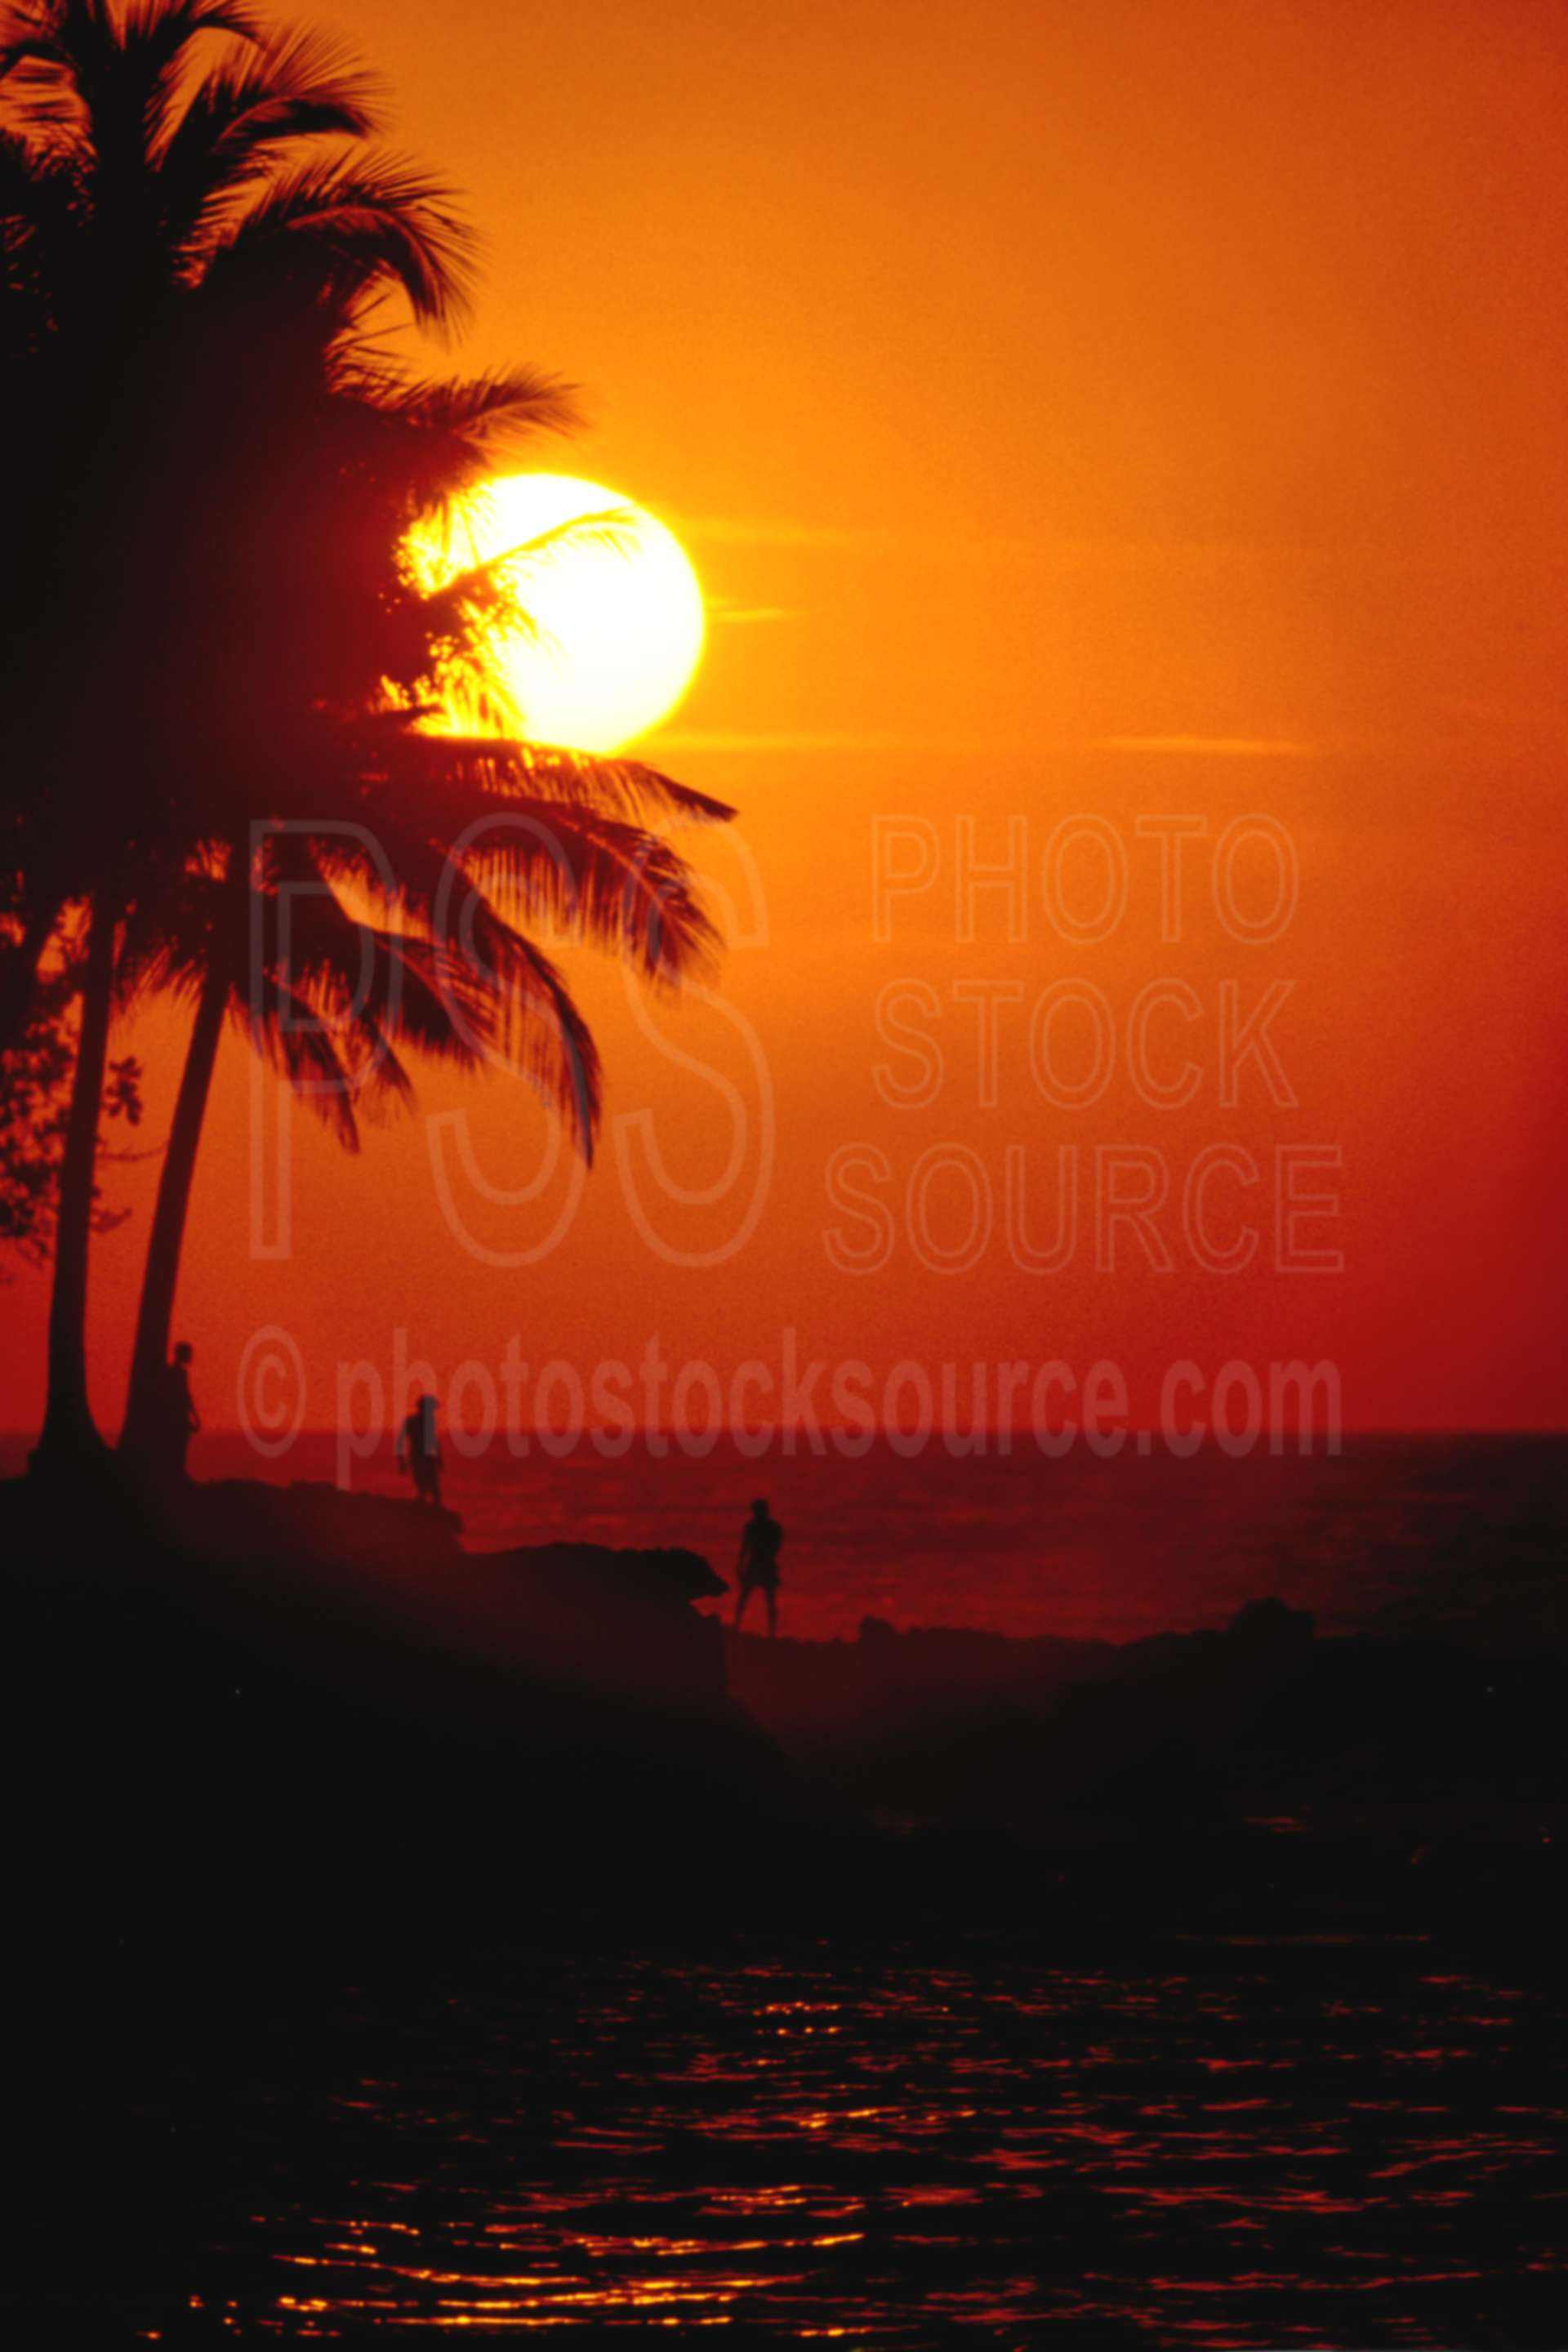 Sunset at Madang,ocean,palm,seas,sunset,trees,water,seascapes